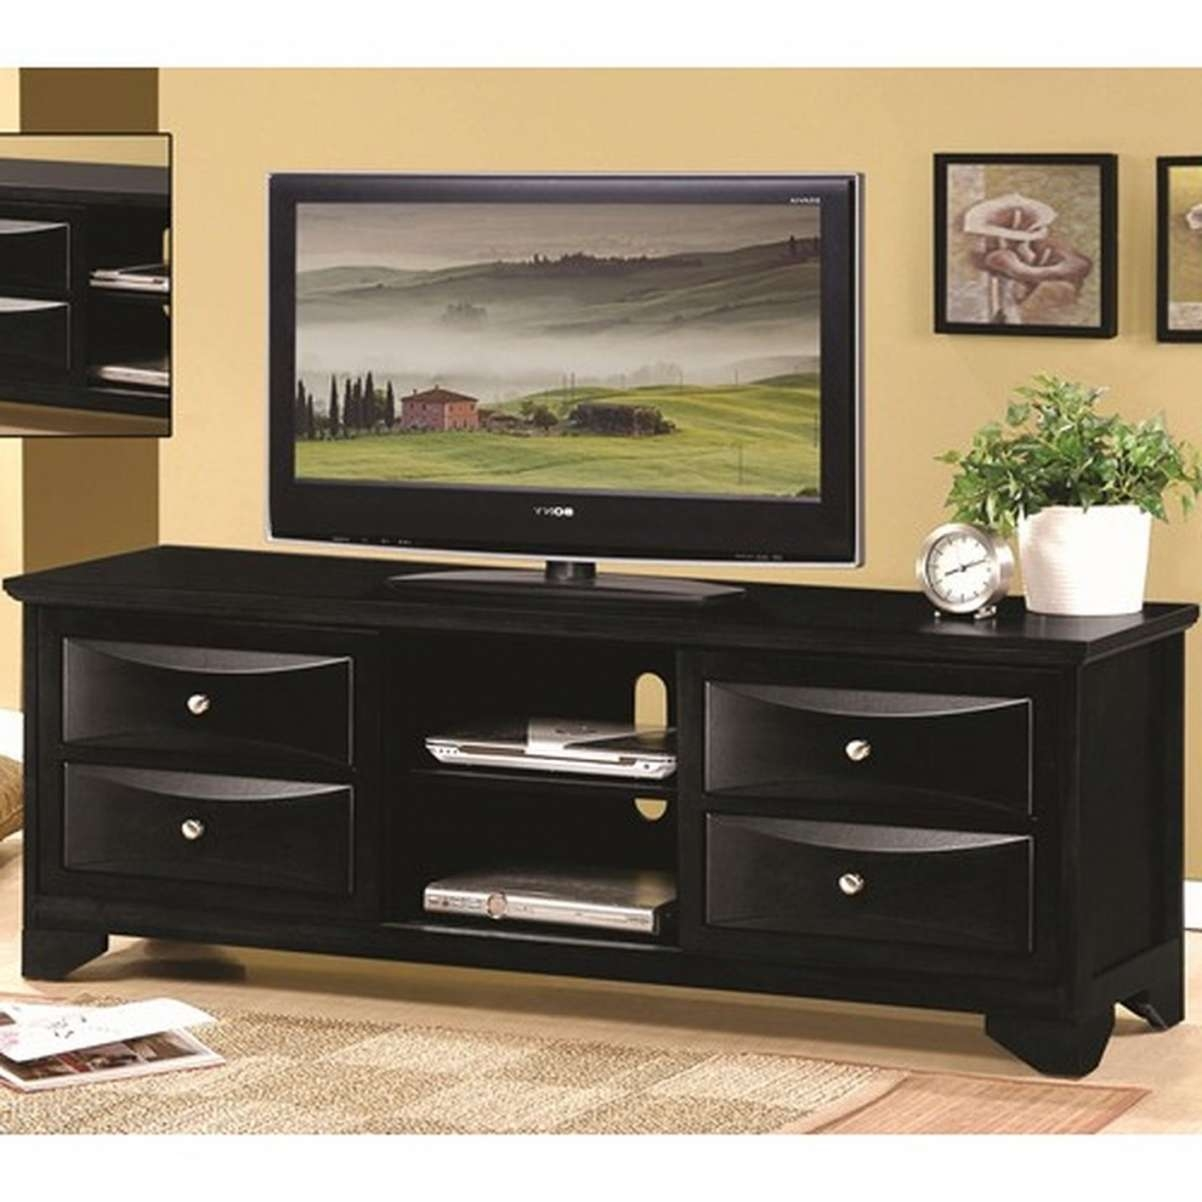 Luxury Tv Stands Big Lots Fresh – Best Furniture Gallery With Regard To Luxury Tv Stands (View 13 of 15)